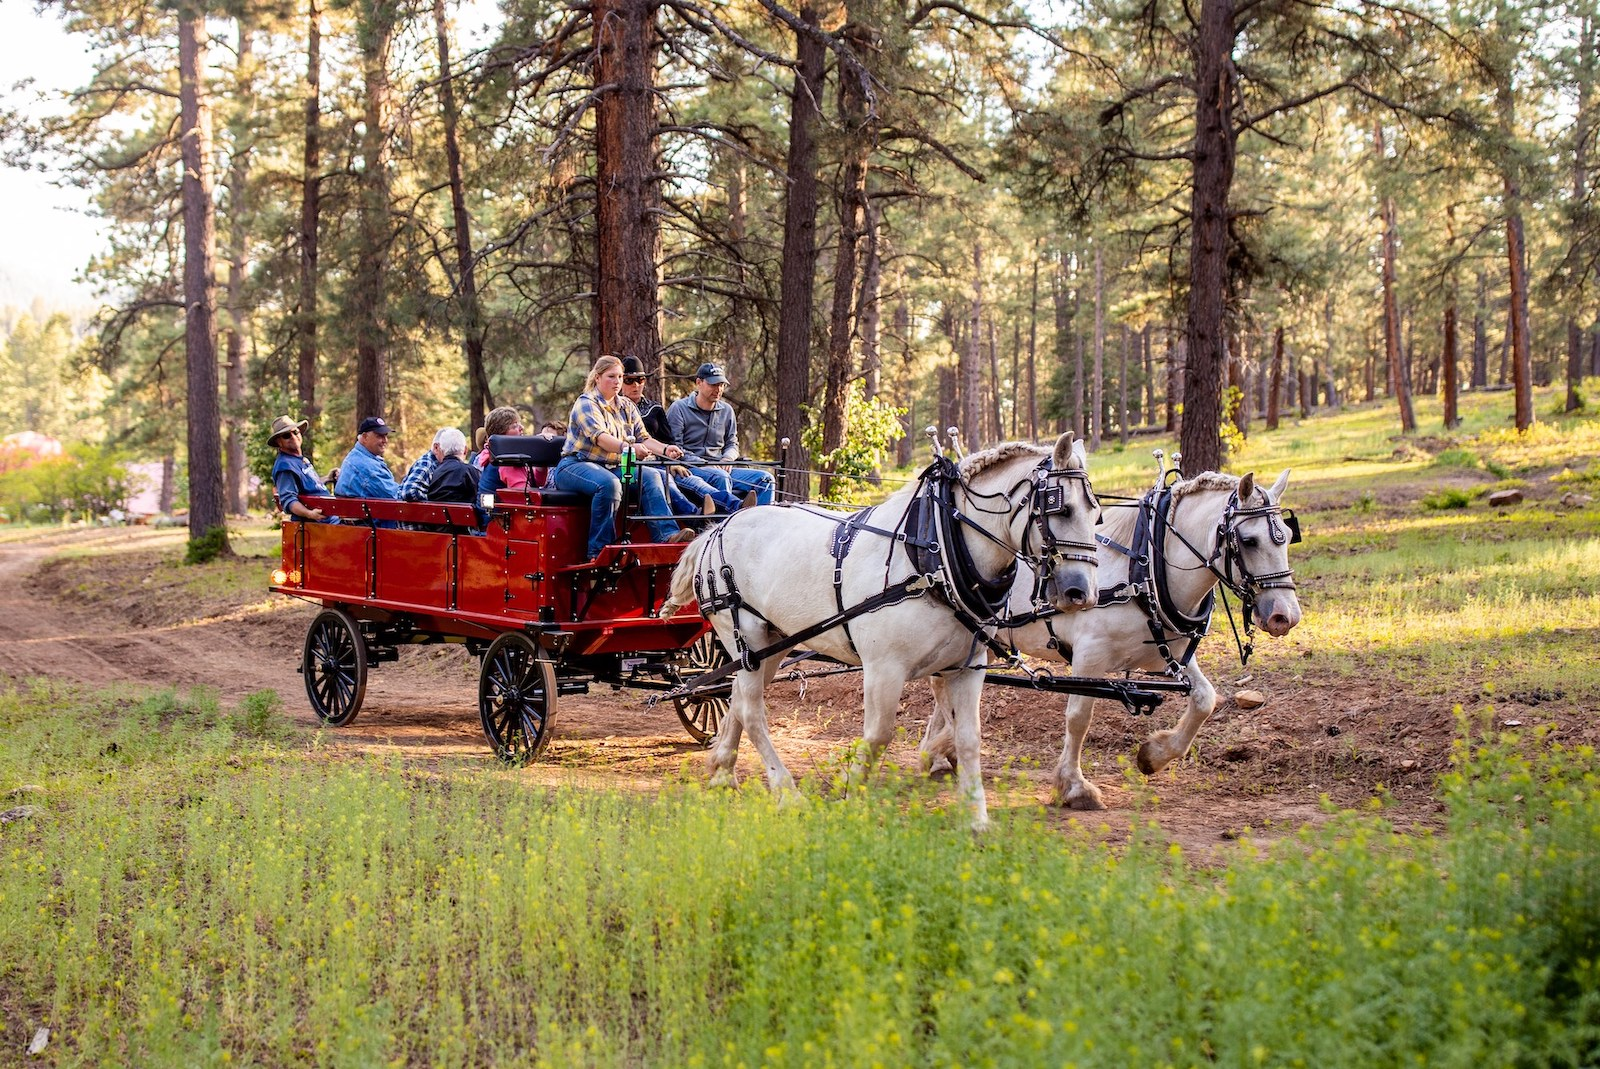 Image of a wagon pulling people at Colorado Trails Ranch in Durango